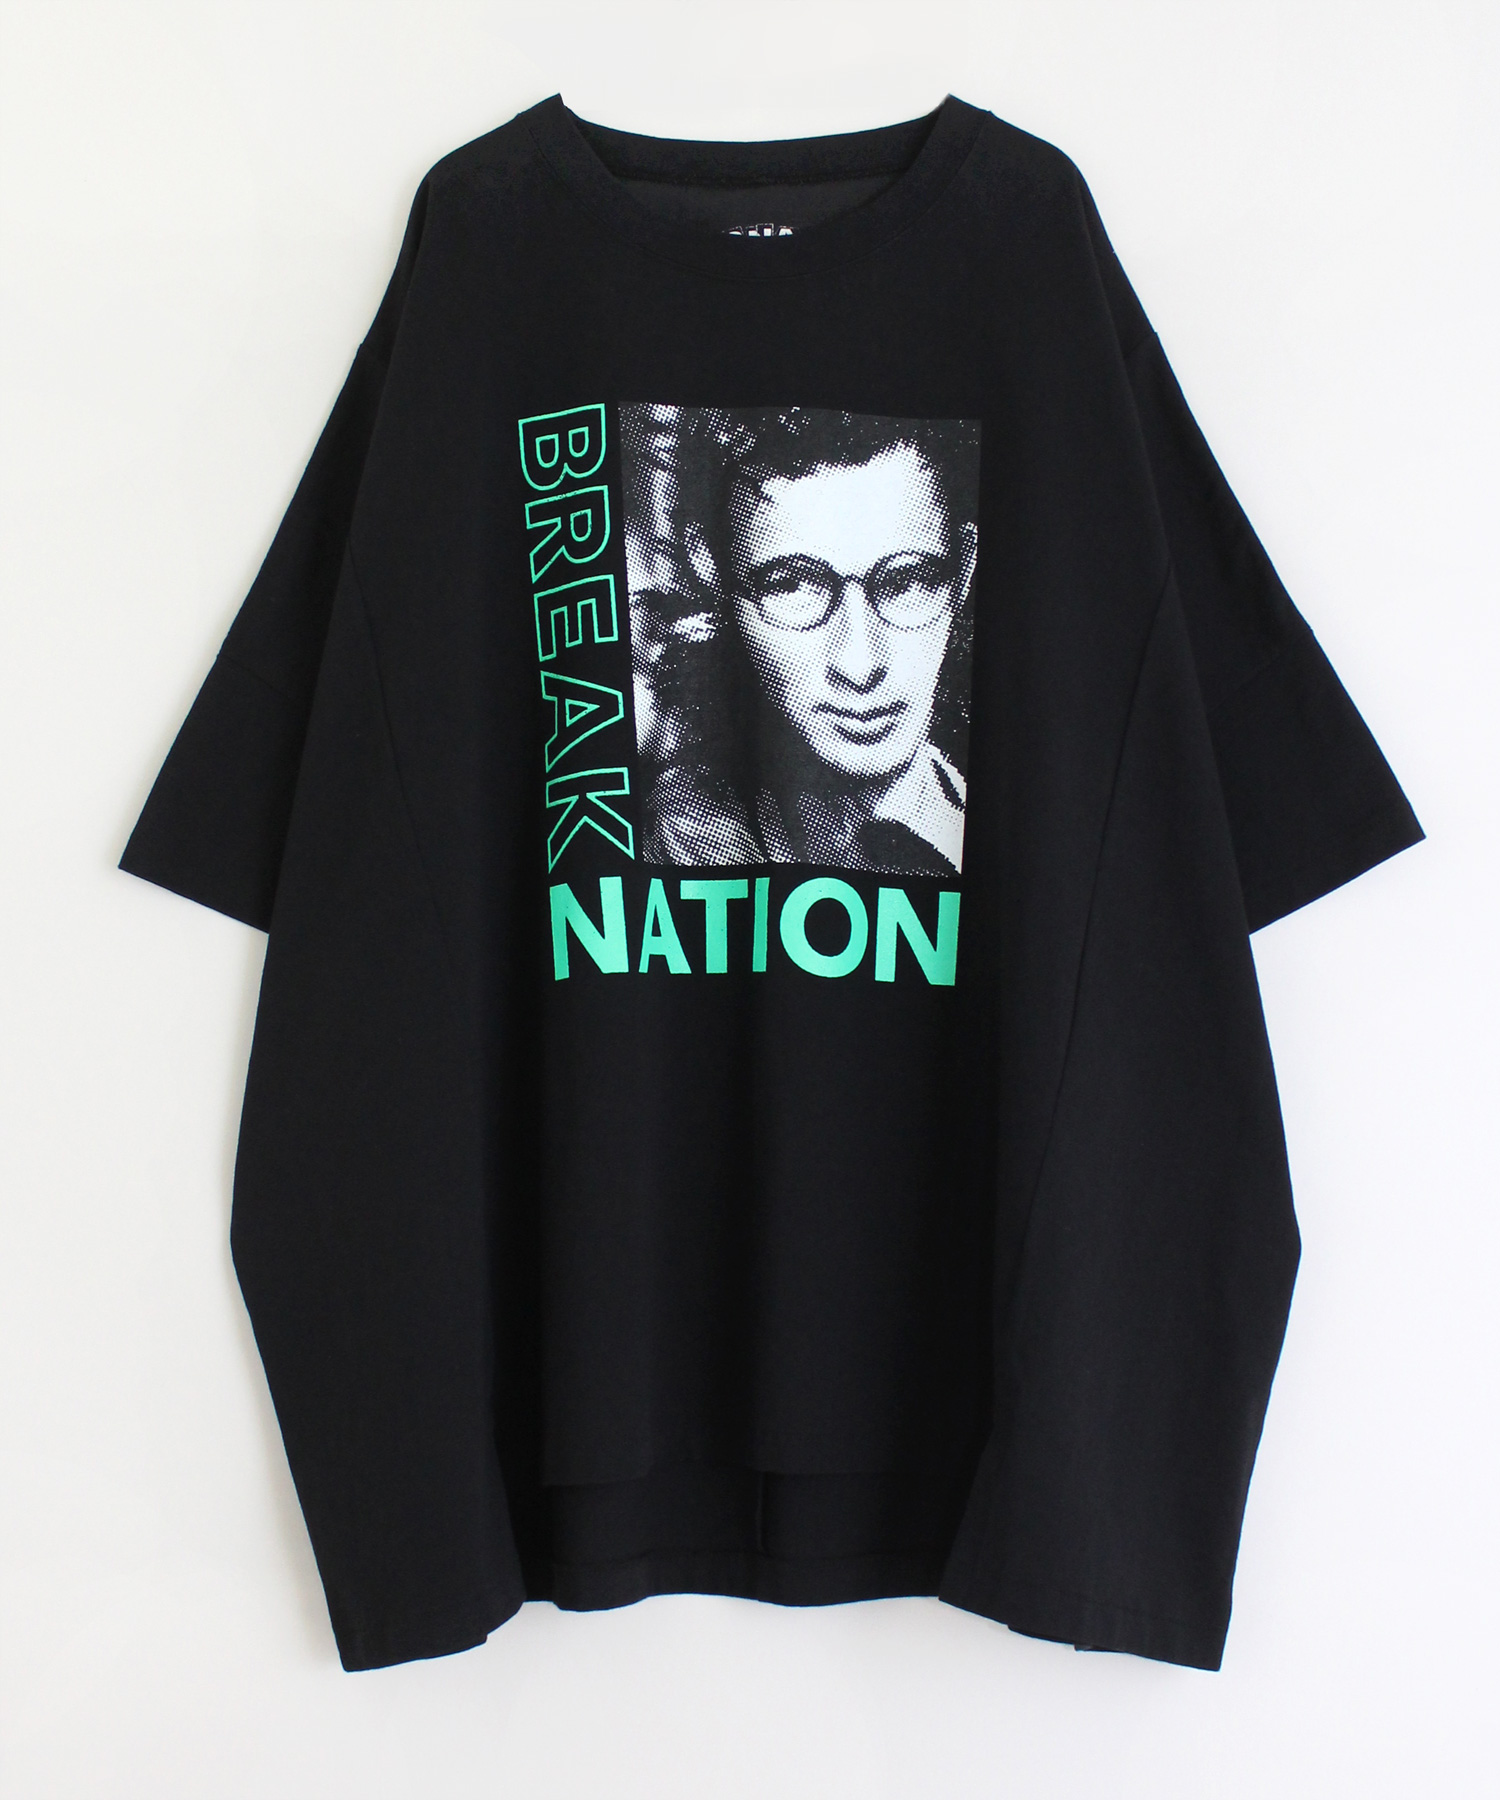 M1502 BREAK NATIONワイドBIG Tシャツ